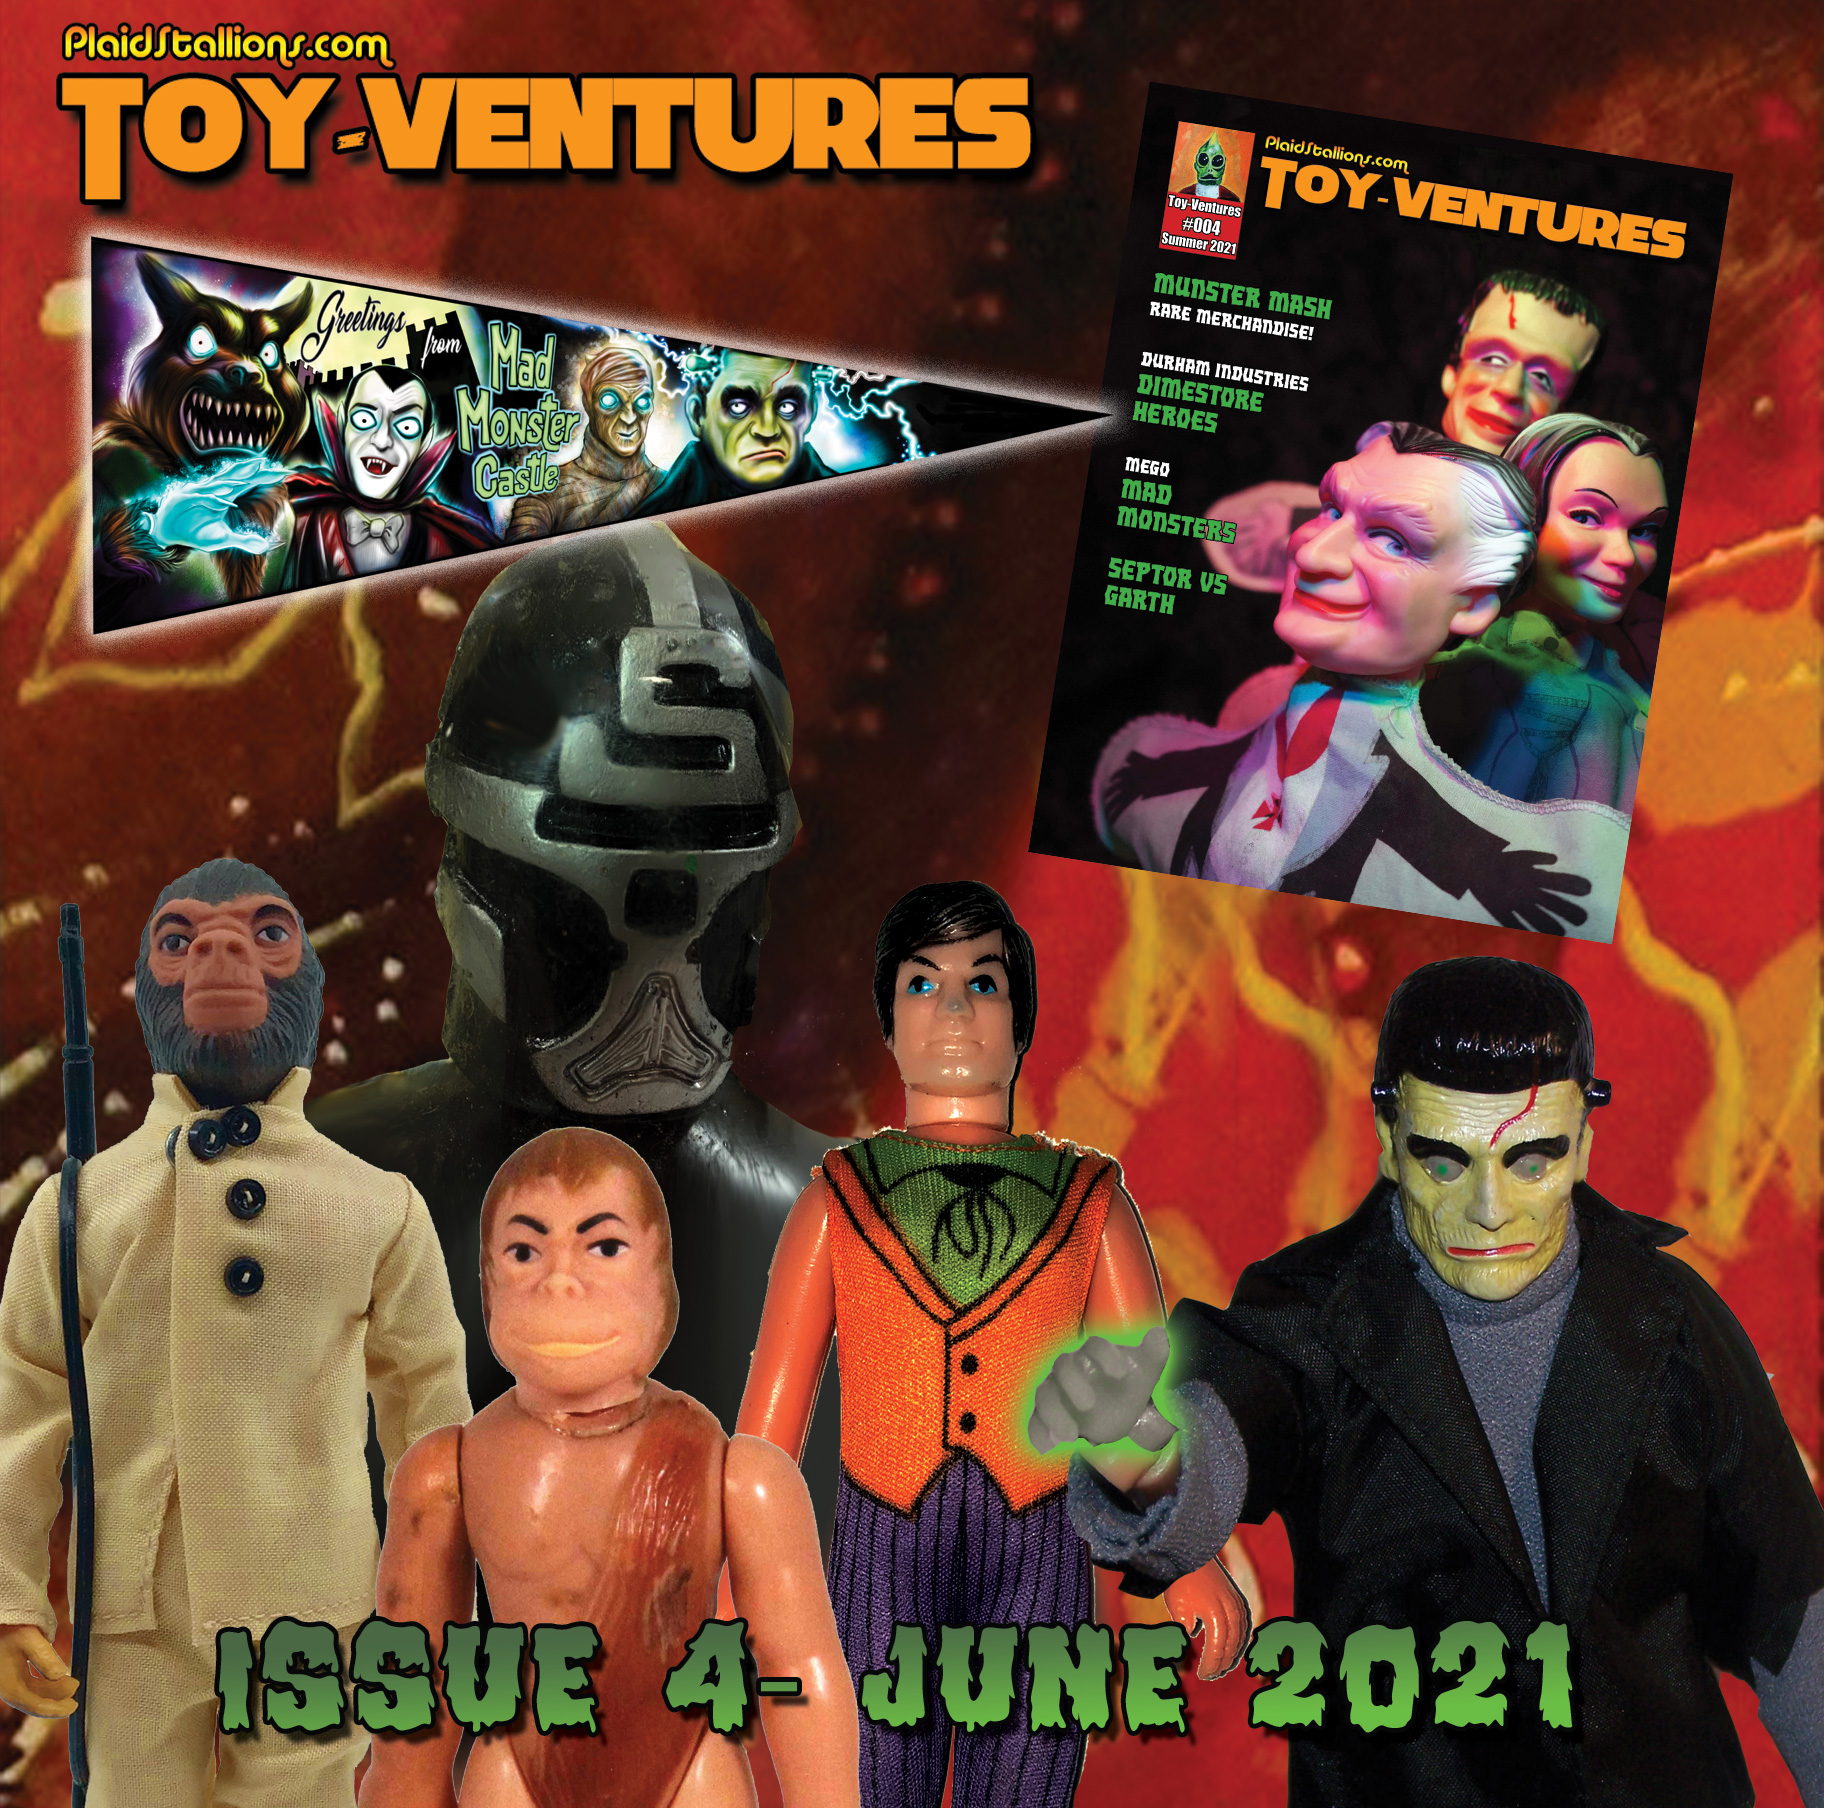 """<a href=""""http://www.megomuseum.com/odeon/store/products/"""">Issue 4 of Toy-Ventures magazine is now shipping, get it while it's hot!</a> <a href=""""http://plaidstallions.com/reboot/wp-content/uploads/2021/05/june4.jpg""""><img class=""""alignnone wp-image-16900 """" src=""""http://plaidstallions.com/reboot/wp-content/uploads/2021/05/june4.jpg"""" alt="""""""" width=""""664"""" height=""""658"""" /></a> <strong>FACEBOOK GROUPS FROM PLAIDSTALLIONS</strong> <a href=""""https://www.facebook.com/groups/podstallions""""><img class=""""alignnone size-medium wp-image-16274"""" src=""""http://plaidstallions.com/reboot/wp-content/uploads/2021/01/93378148_10221648468230849_1206498730543415296_o-300x169.jpg"""" alt="""""""" width=""""300"""" height=""""169"""" /></a> <a href=""""https://www.facebook.com/groups/podstallions"""">Pod Stallions is one of the most fun groups on Facebook.</a> <a href=""""https://www.facebook.com/groups/Megoknockoff""""><img class=""""alignnone size-medium wp-image-16275"""" src=""""http://plaidstallions.com/reboot/wp-content/uploads/2021/01/136455200_10224030090249911_6860183014607719115_o-300x162.jpg"""" alt="""""""" width=""""300"""" height=""""162"""" /></a> <strong><a href=""""https://www.facebook.com/groups/Megoknockoff"""">Mego Knock Off Headquarters</a>- The leading group discussing 70s dimestore goodness, we talk vintage toys, not others!</strong> <a href=""""http://plaidstallions.com/reboot/plaidstallions-action-figure-galleries-mego-knock-offs/"""">Visit the PlaidStallions Action Figure Archive, we catalog unique toylines from the 70s &amp; 80s including rare Japanese toys and knock-offs, updates done daily.</a><a href=""""http://plaidstallions.com/reboot/plaidstallions-action-figure-galleries/""""><img class=""""size-medium wp-image-16947"""" src=""""http://plaidstallions.com/reboot/wp-content/uploads/2021/05/Action-Figure-Archive-Header-300x126.jpg"""" alt=""""Plaid Stallions Action Figure Archive"""" width=""""300"""" height=""""126"""" /></a> PlaidStallions Action Figure Archive&nbsp; &nbsp;"""